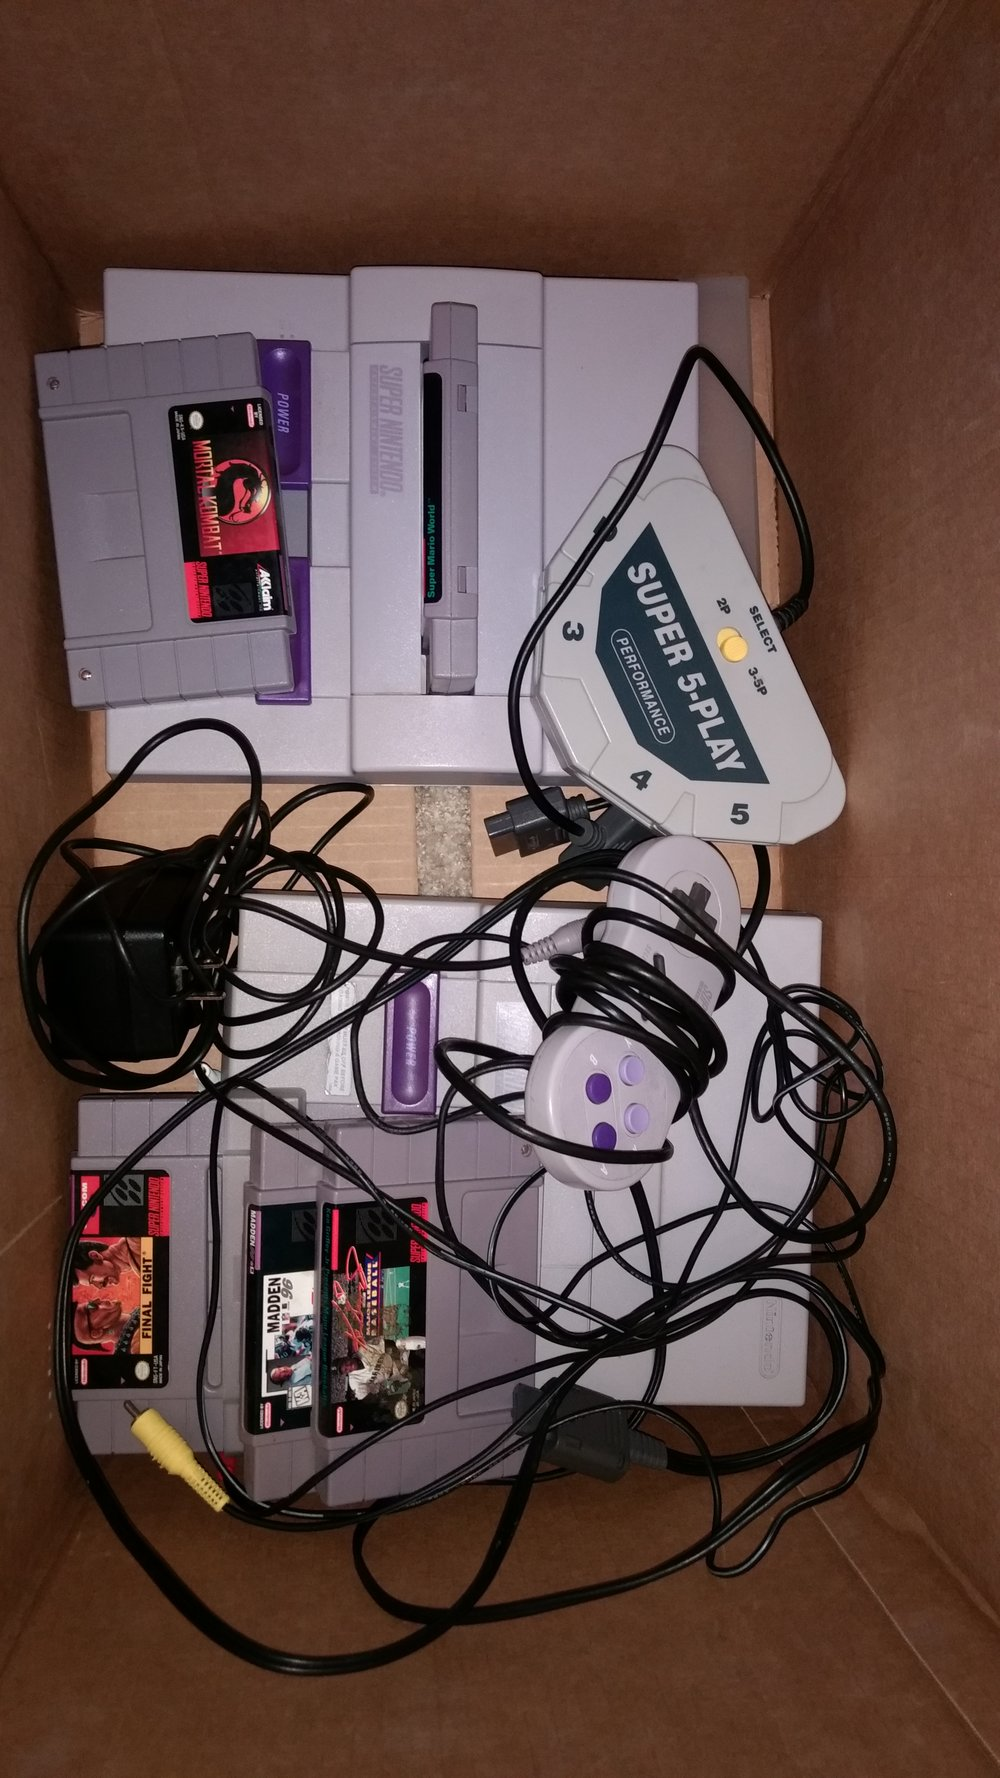 Garage Sale Finds May 2017 The Gamers Lounge Electrical Wiring Games Over Next Week I Got A Response To One Of My Offerup Adds Guy Was Looking Sell Snes And He Also Had Nes With Hookups